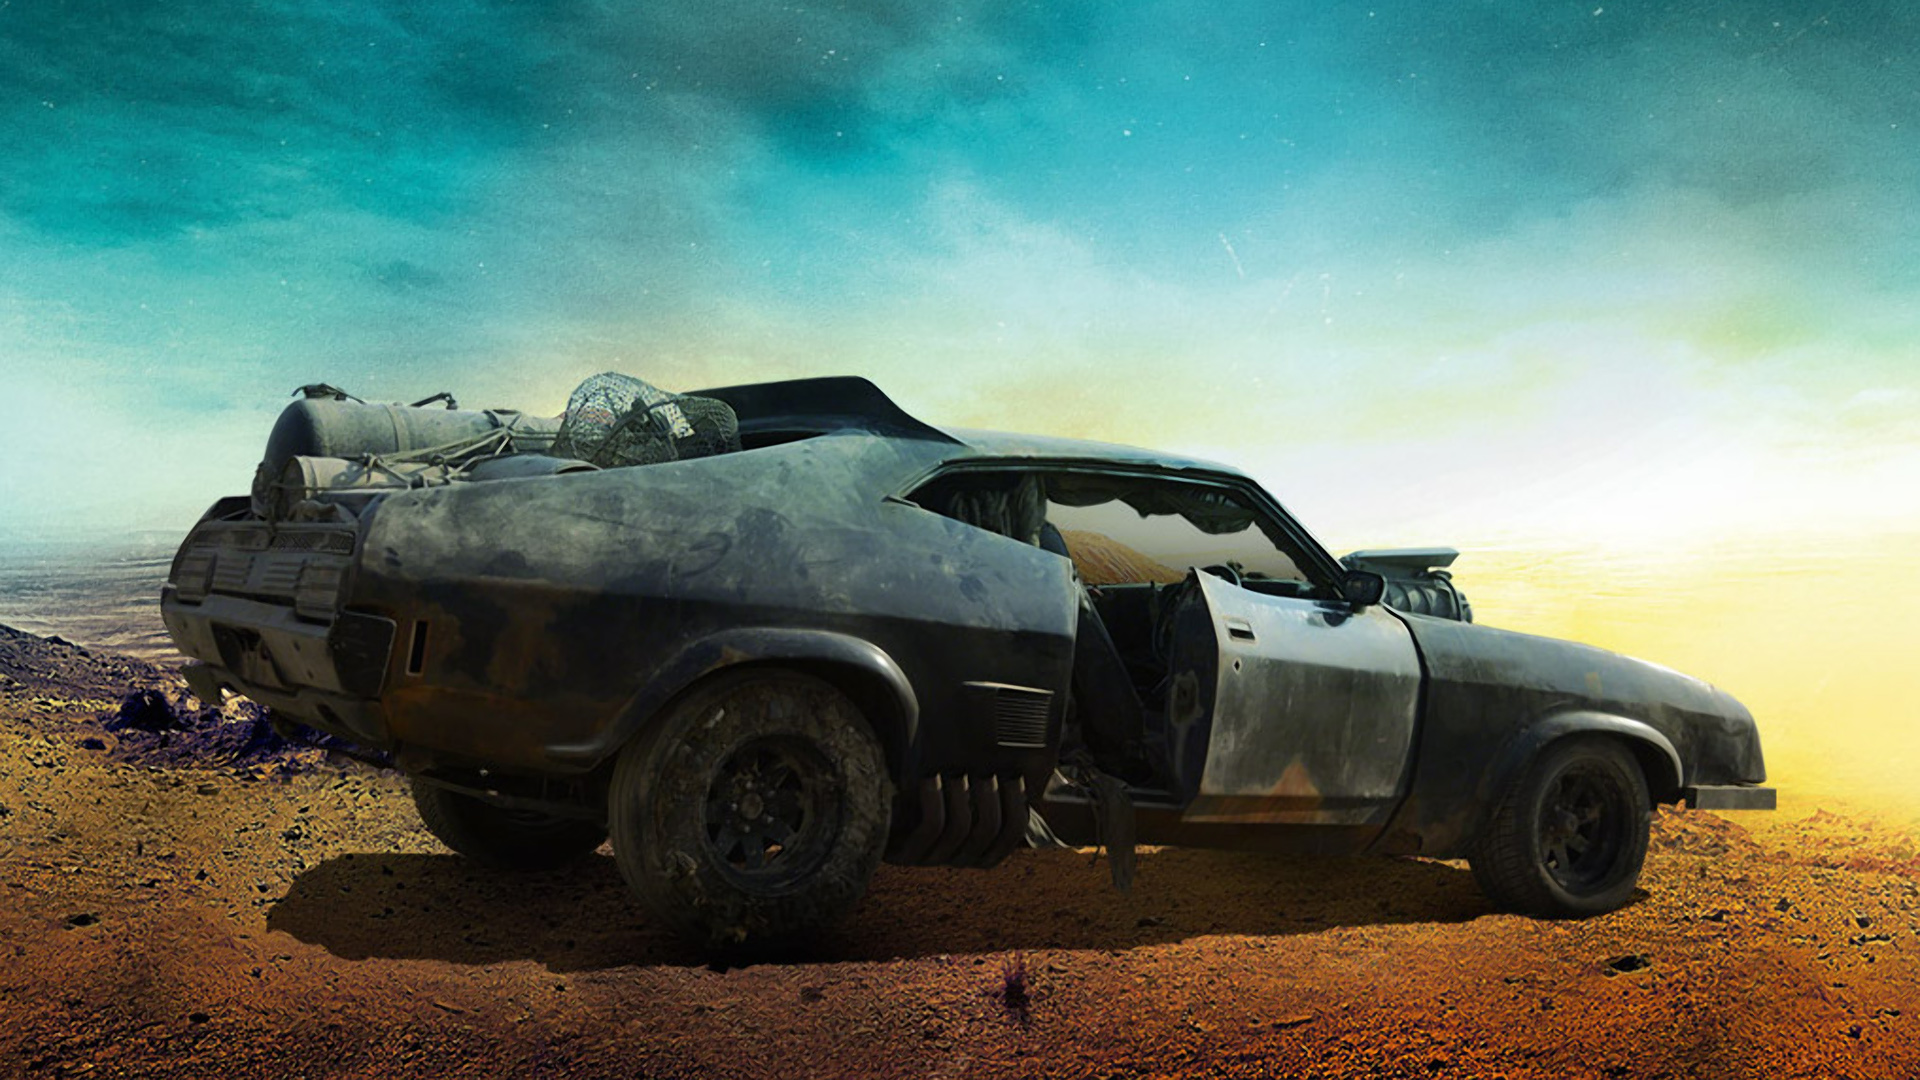 Mad Max HD Wallpaper 2712 1920x1080